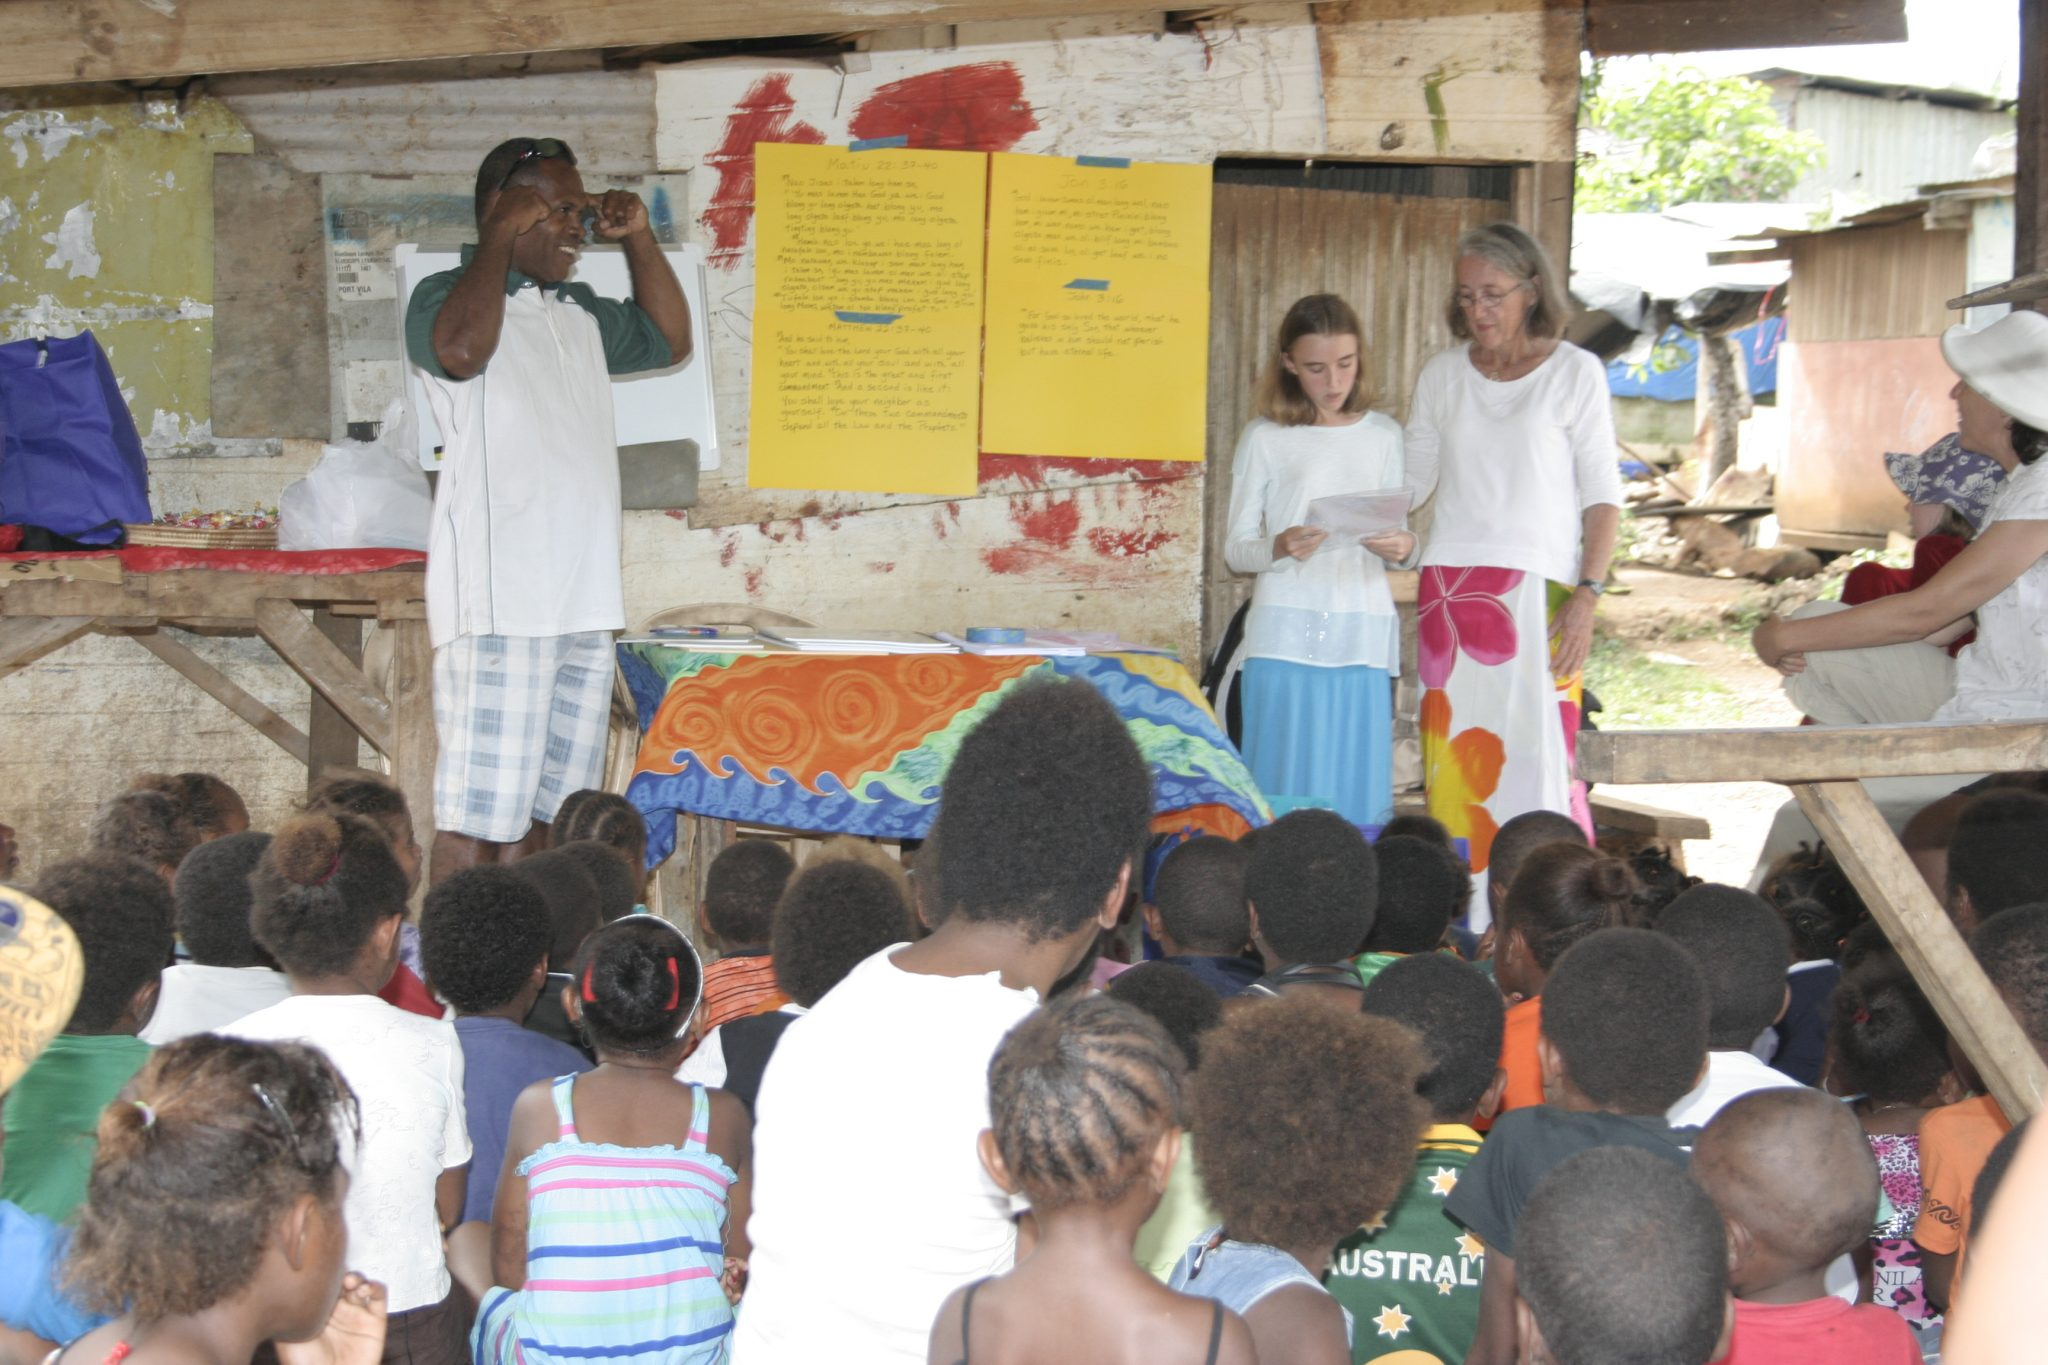 39-anne-and-faith-read-john-3-16-in-bislama-and-english-to-the-children-anne-read-matthiew-22-37-40-to-them-in-bislama-and-english-willy-sometimes-used-hand-symbols-to-help-communicate-in-bislama